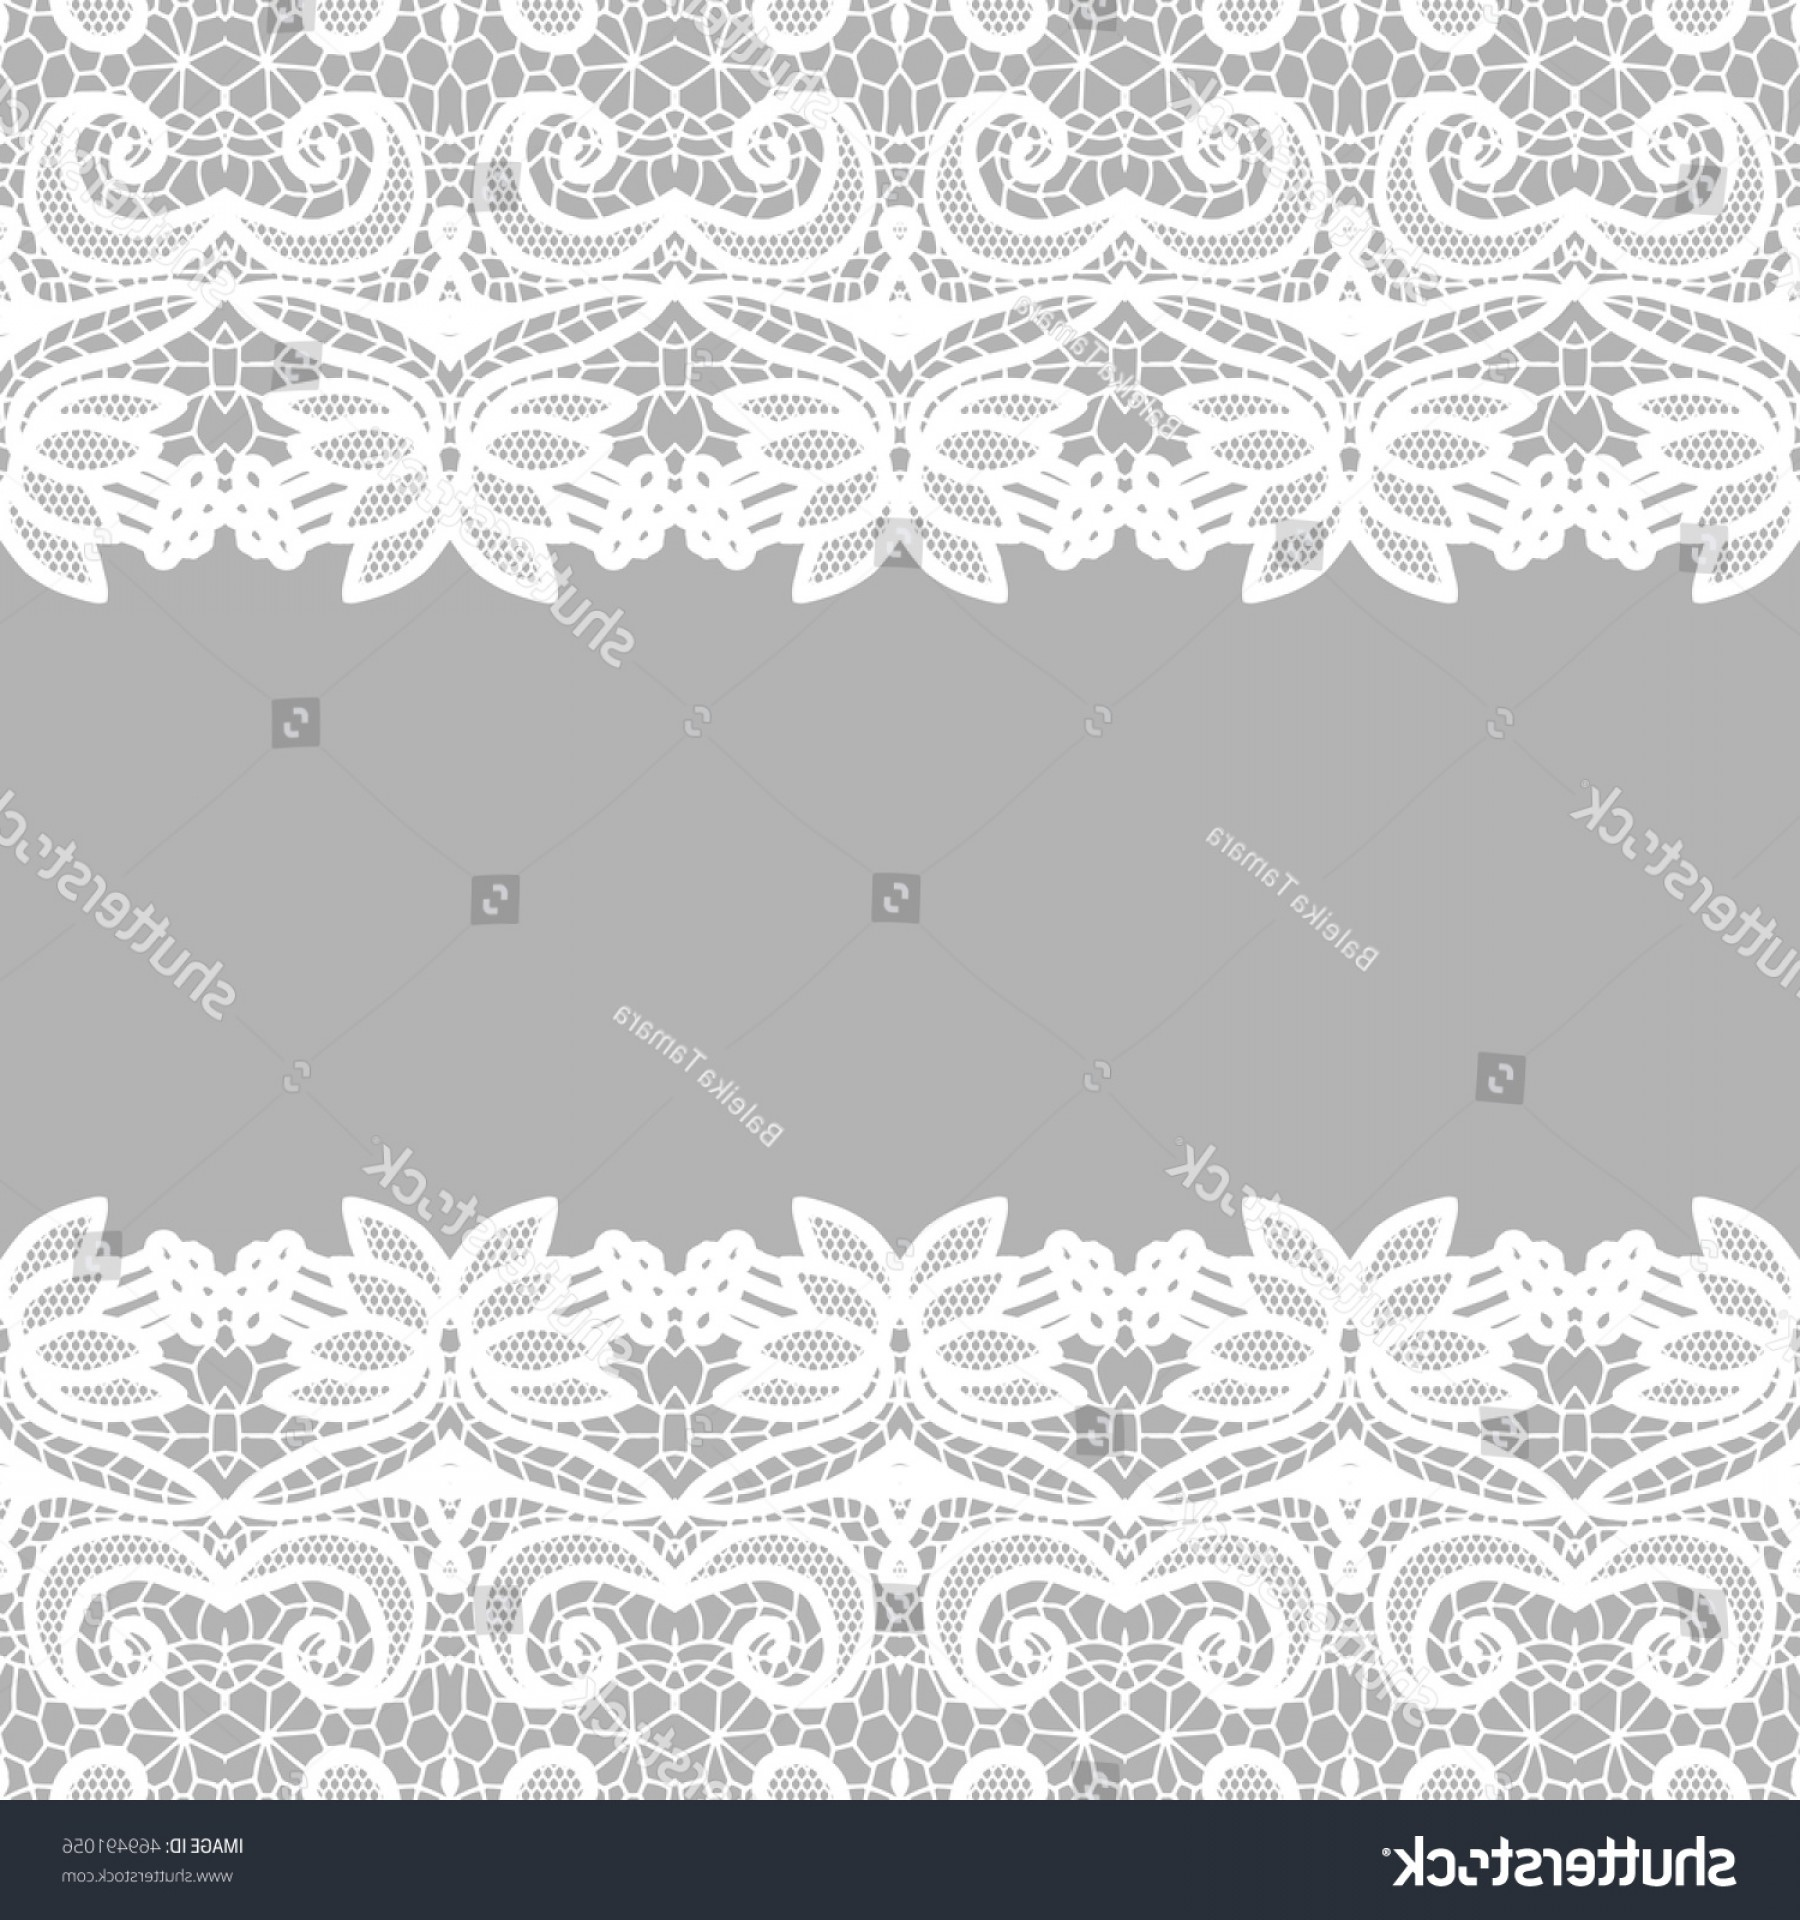 Floral Lace Trim Vector: Lace Border Vector Illustration White Lacy